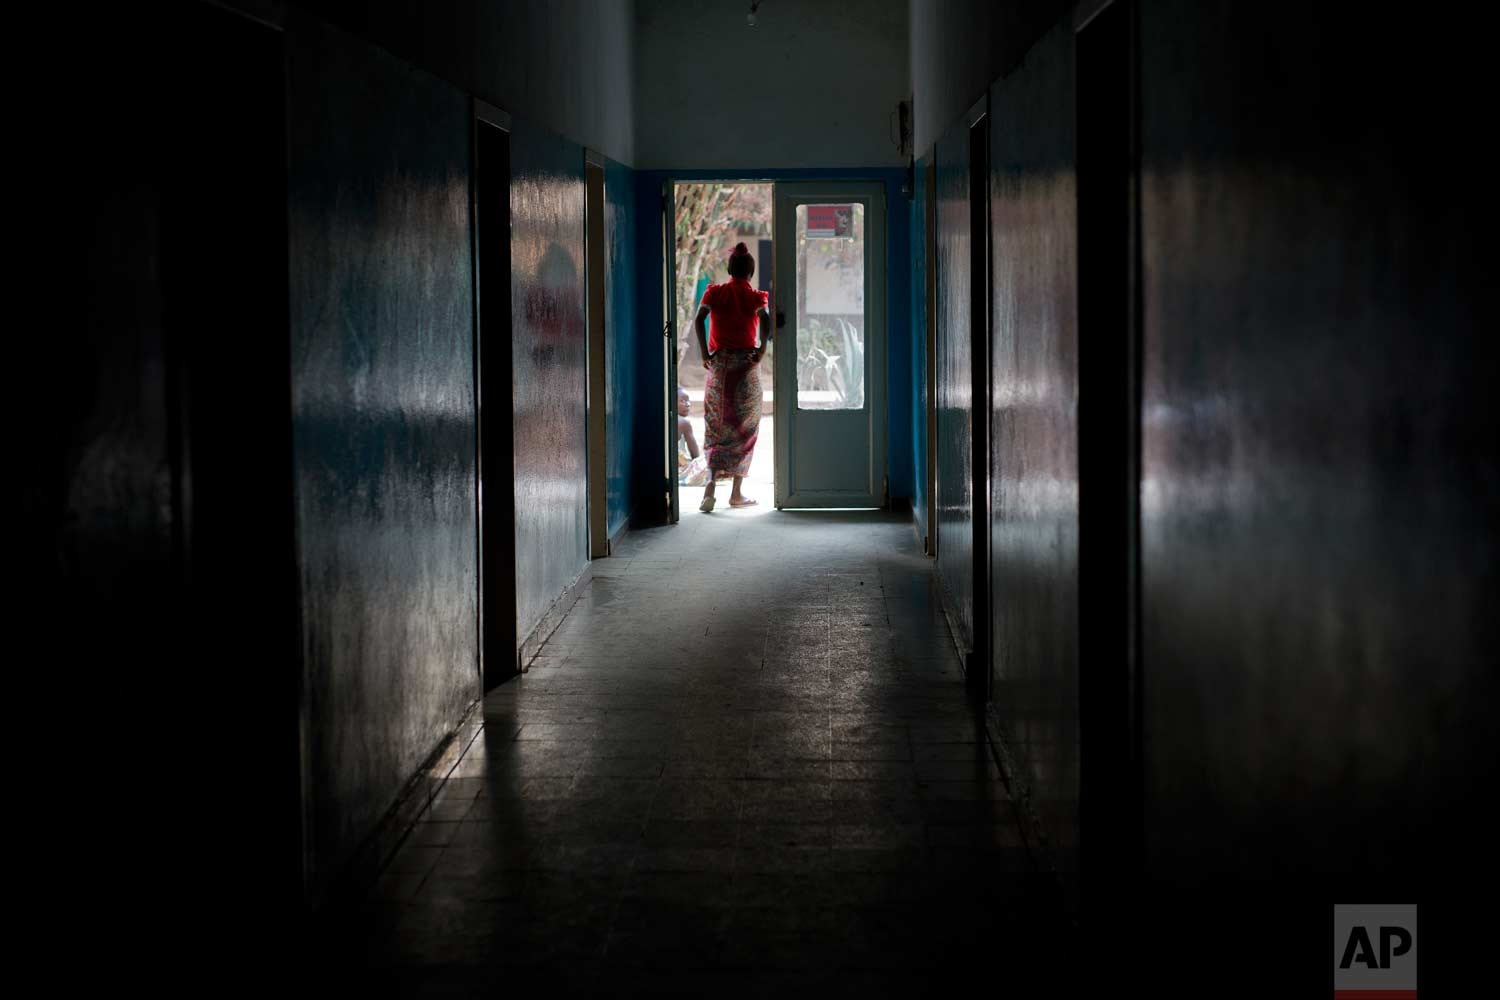 A patient stands in a doorway at the Katuba Reference Hospital in Lubumbashi, Democratic Republic of the Congo on Monday, Aug. 13, 2018. (AP Photo/Jerome Delay)